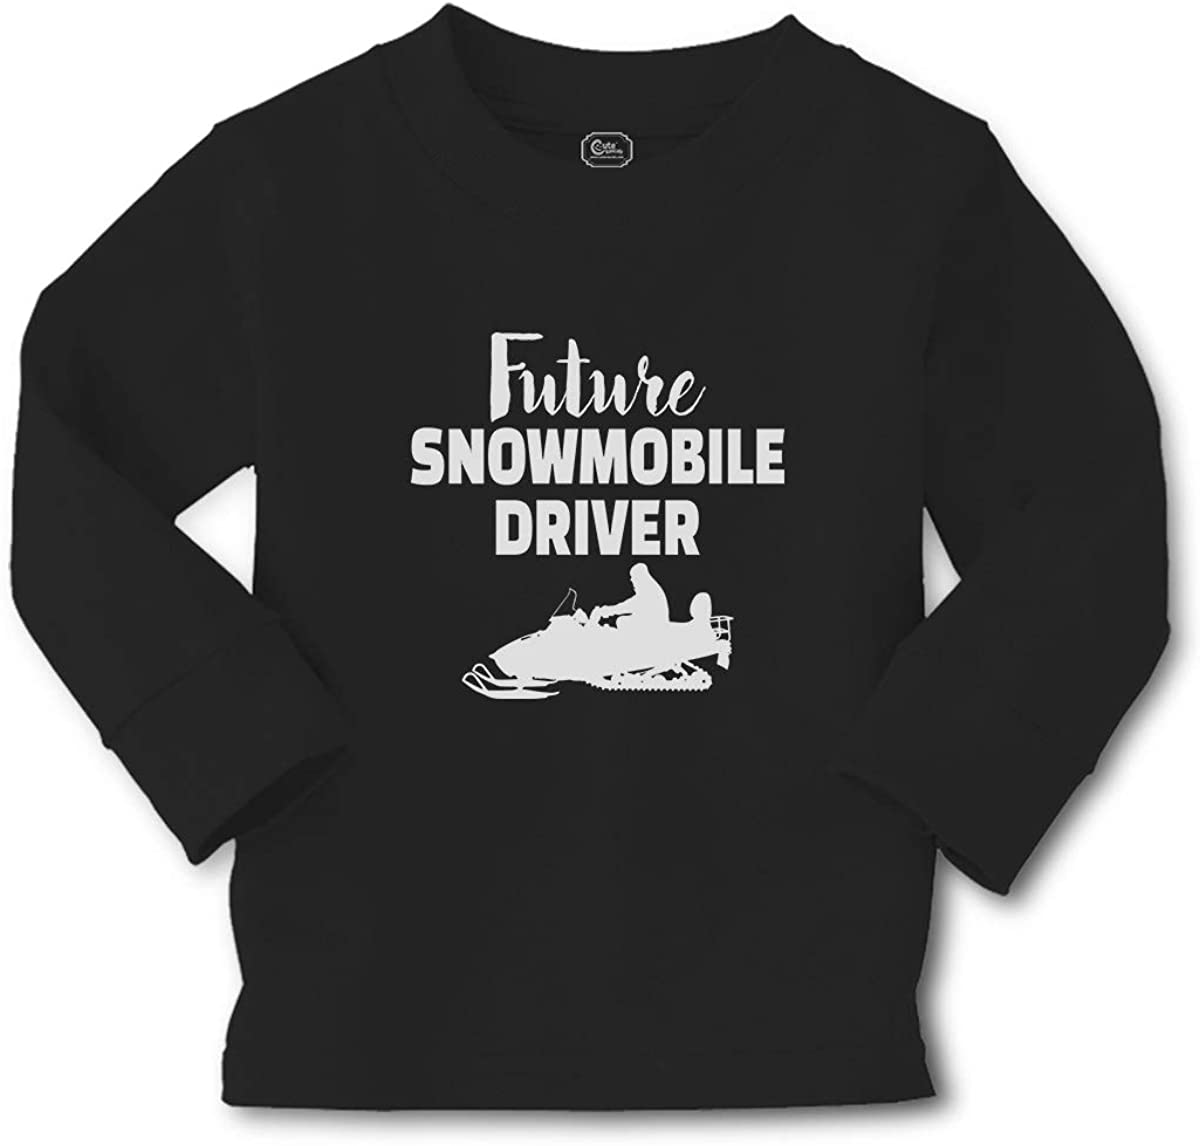 Cute Rascals Kids Long Sleeve T Shirt Future Snowmobile Driver Cotton Boy & Girl Clothes Funny Graphic Tee Black Design Only 4T